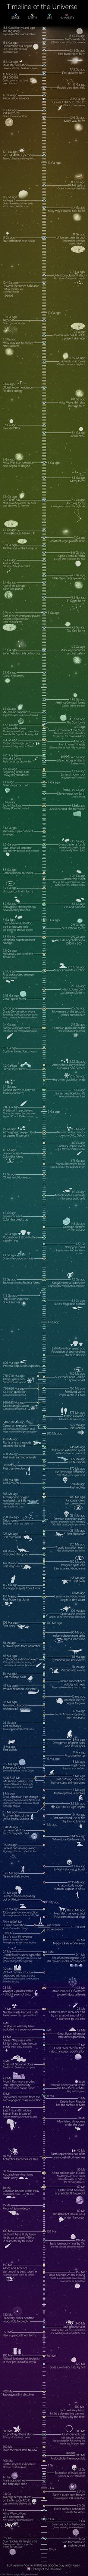 Don't know much about history? How about the future? A new infographic by…